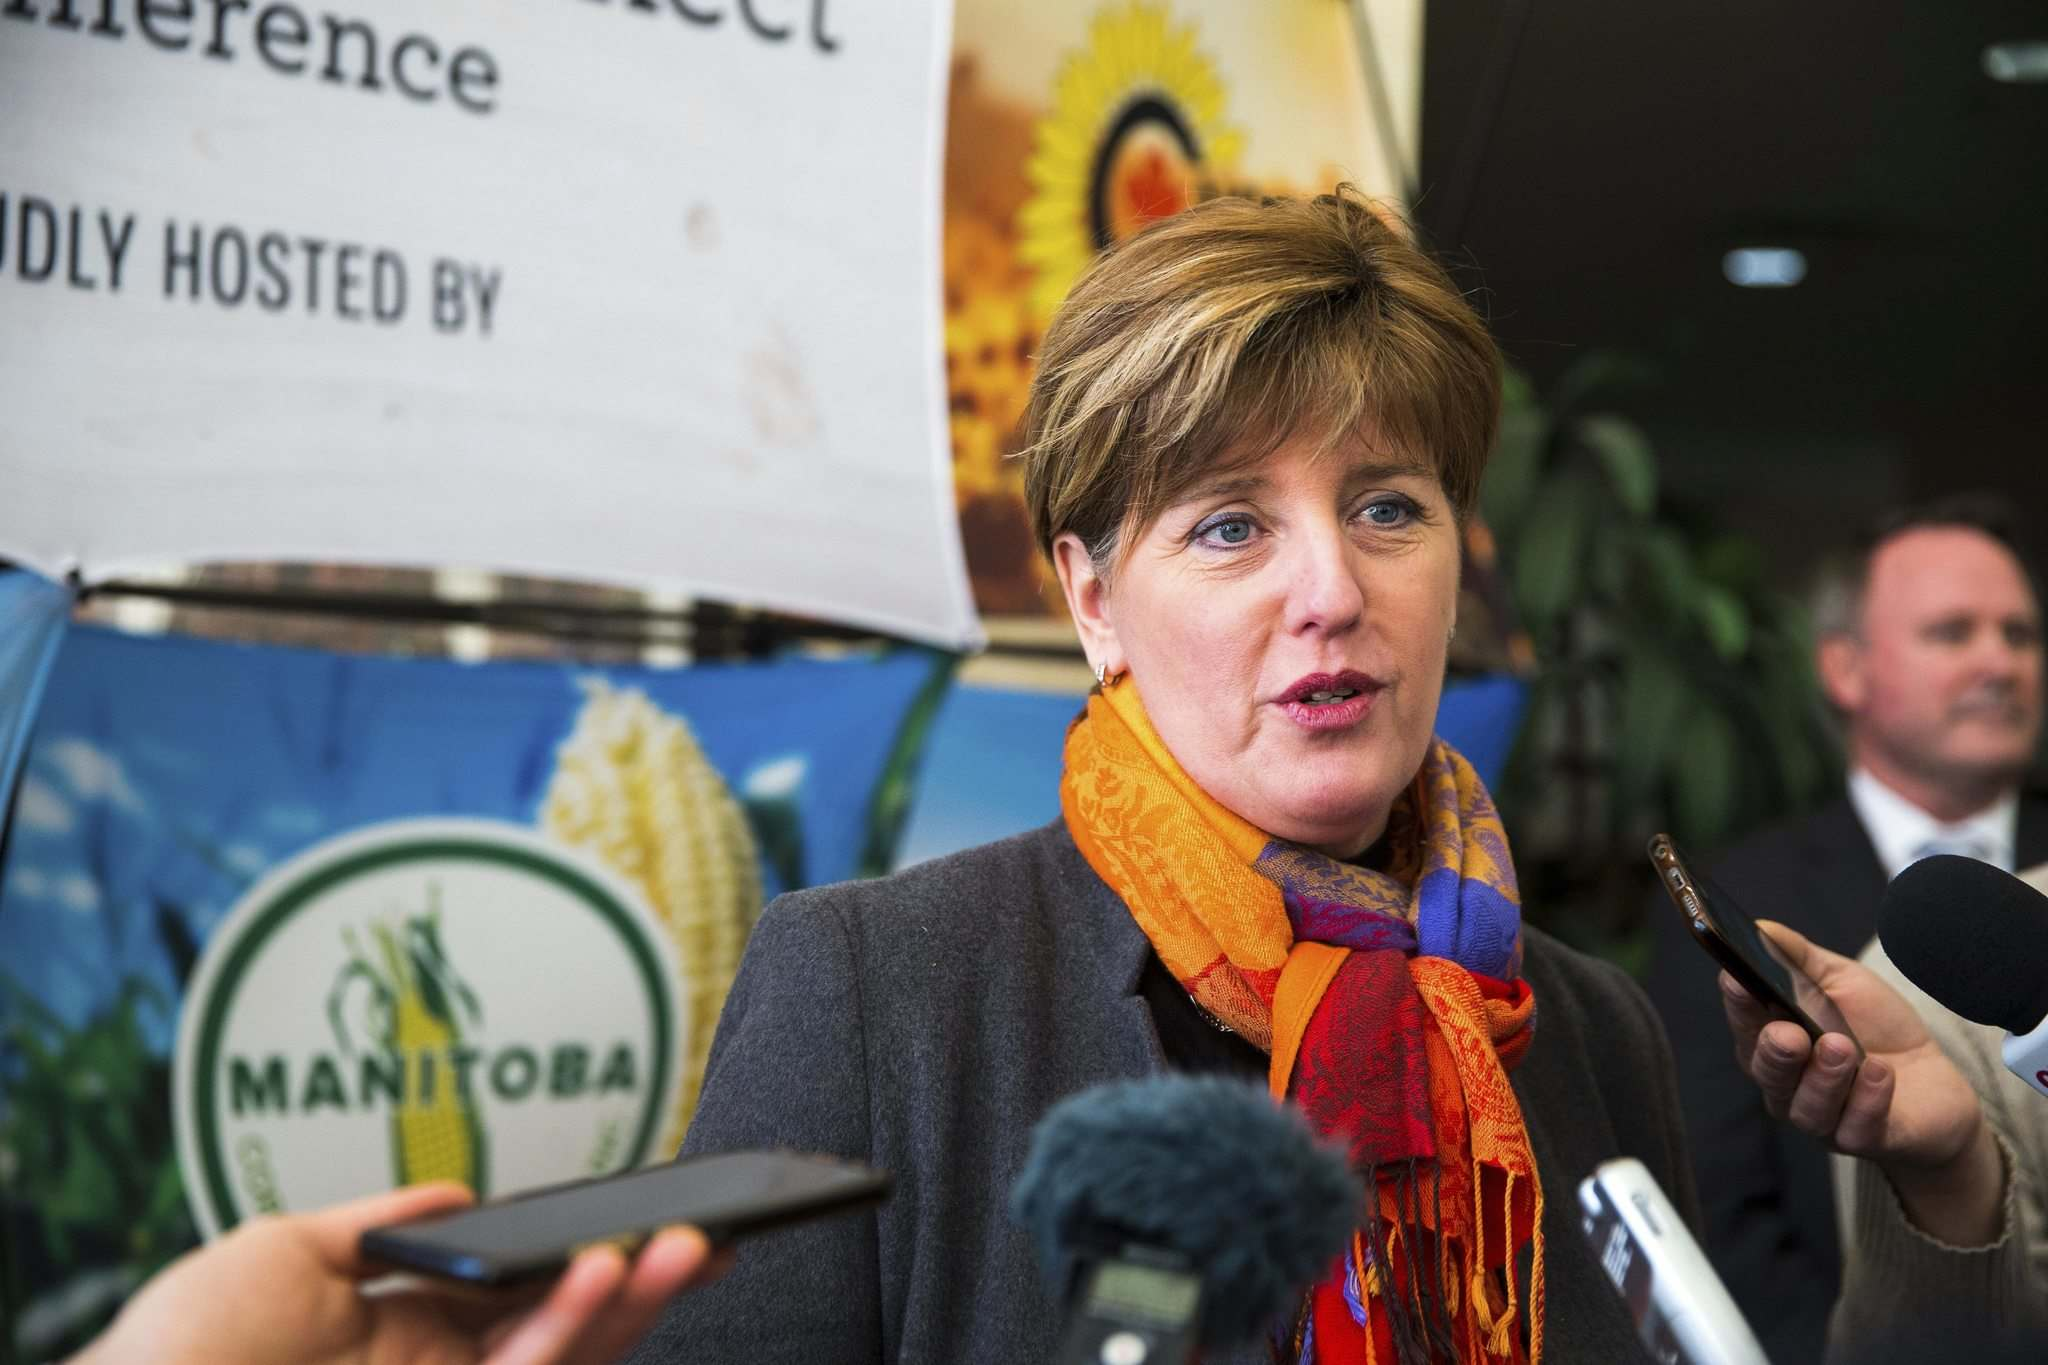 MIKAELA MACKENZIE / WINNIPEG FREE PRESS</p><p>Marie-Claude Bibeau, minister of agriculture and agri-food, said the government respects and appreciates the work of grain farmers during a visit to Winnipeg Wednesday.</p>